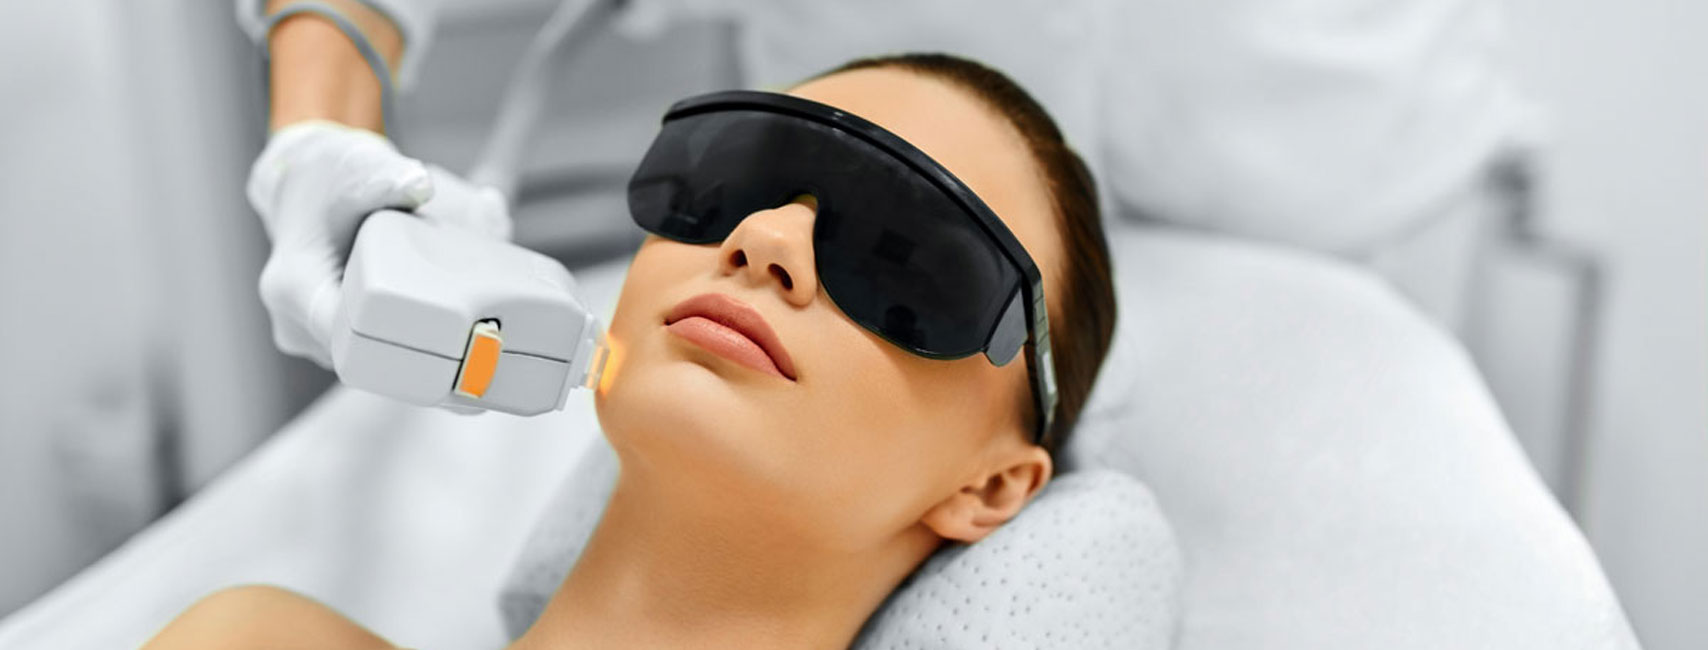 laser-treatments